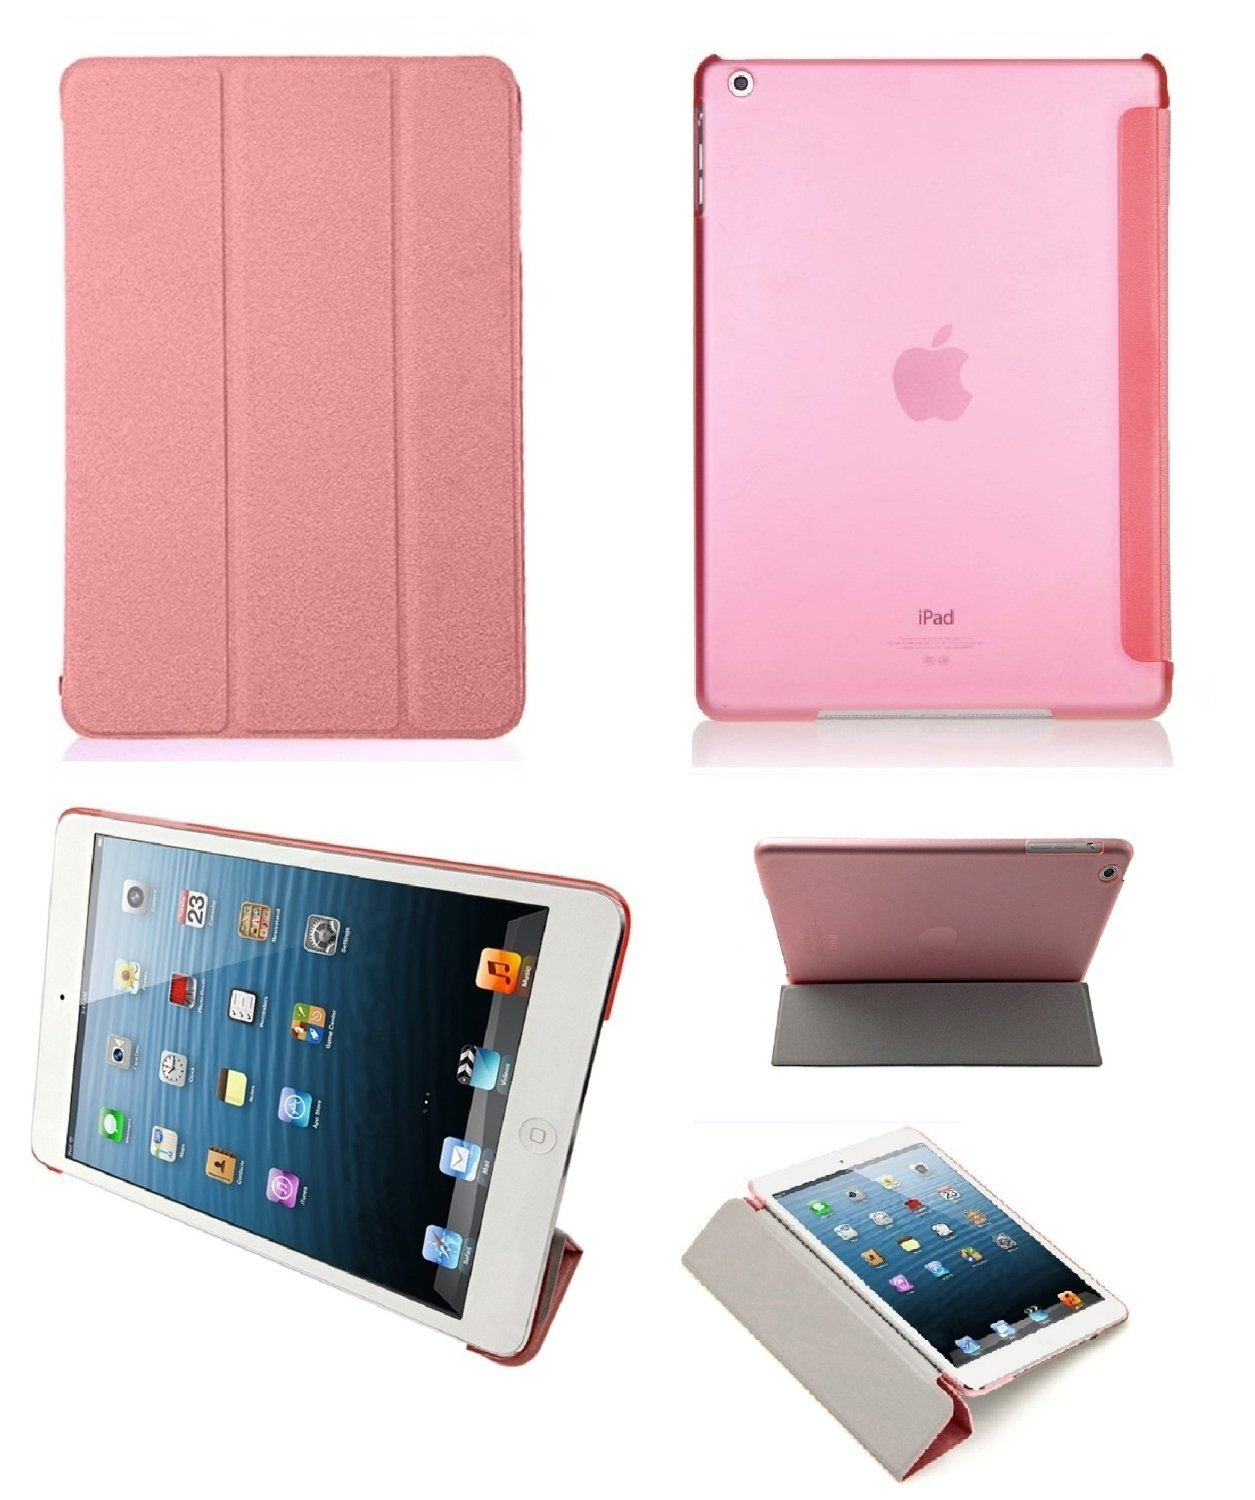 Cheap Ipad Cover Bear, find Ipad Cover Bear deals on line at Alibaba com